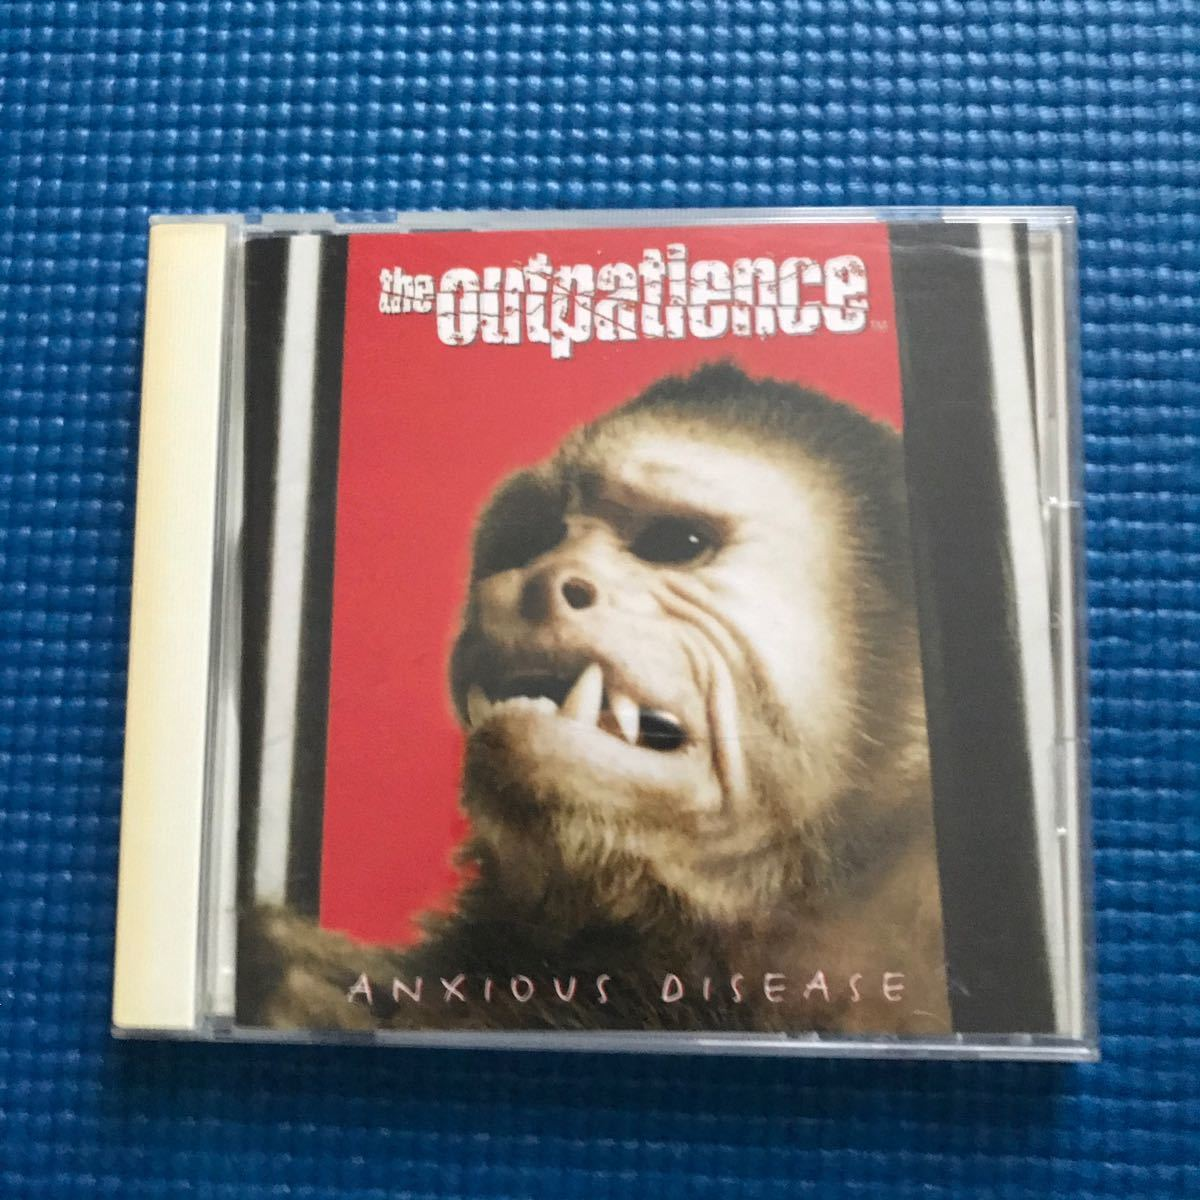 The Outpatience Anxious Disease 日本盤